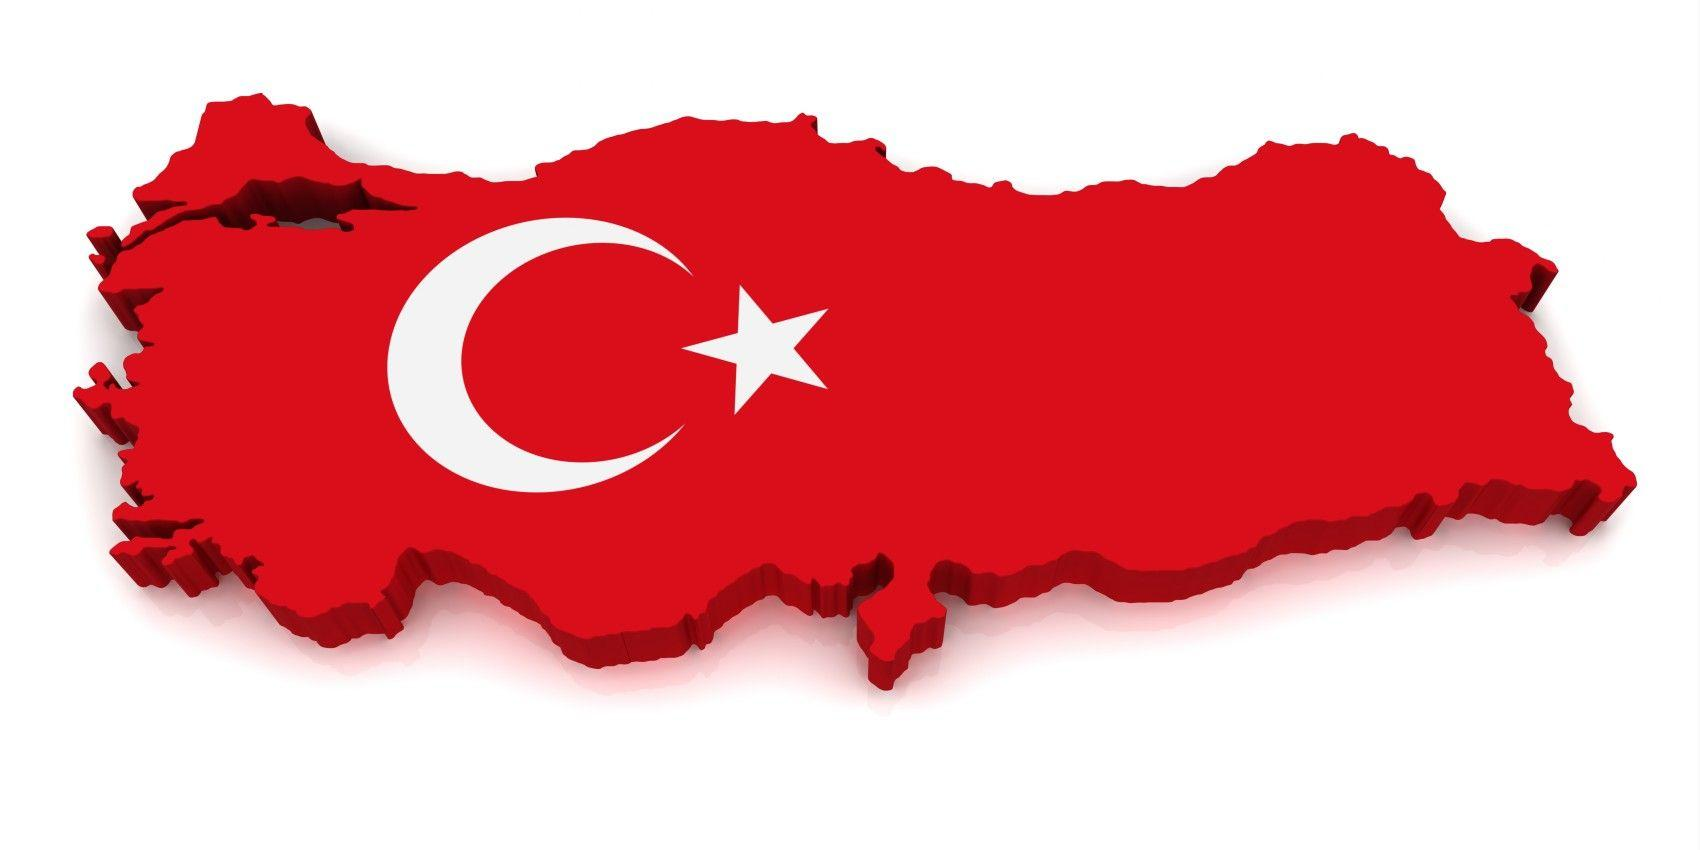 AIO Turkey! Flags, Cities, Meals, Tourism, Pictures, Wallpapers ...